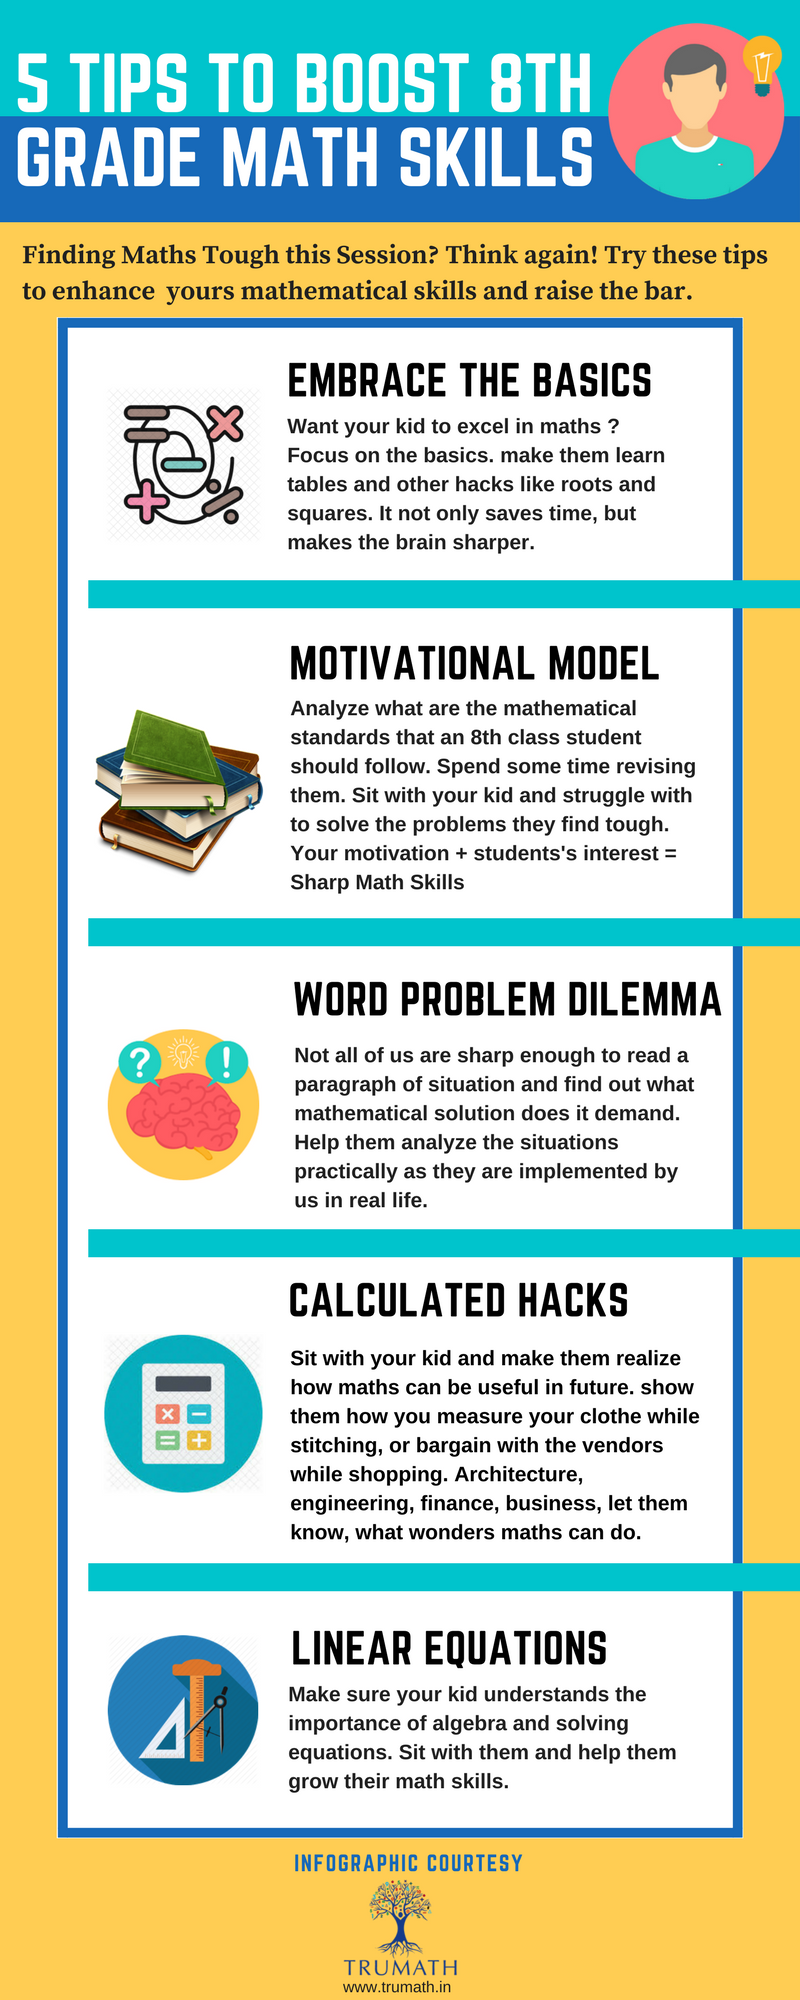 6 Tips To Boost 8th Grade Maths Skills Infographic | Learn ...